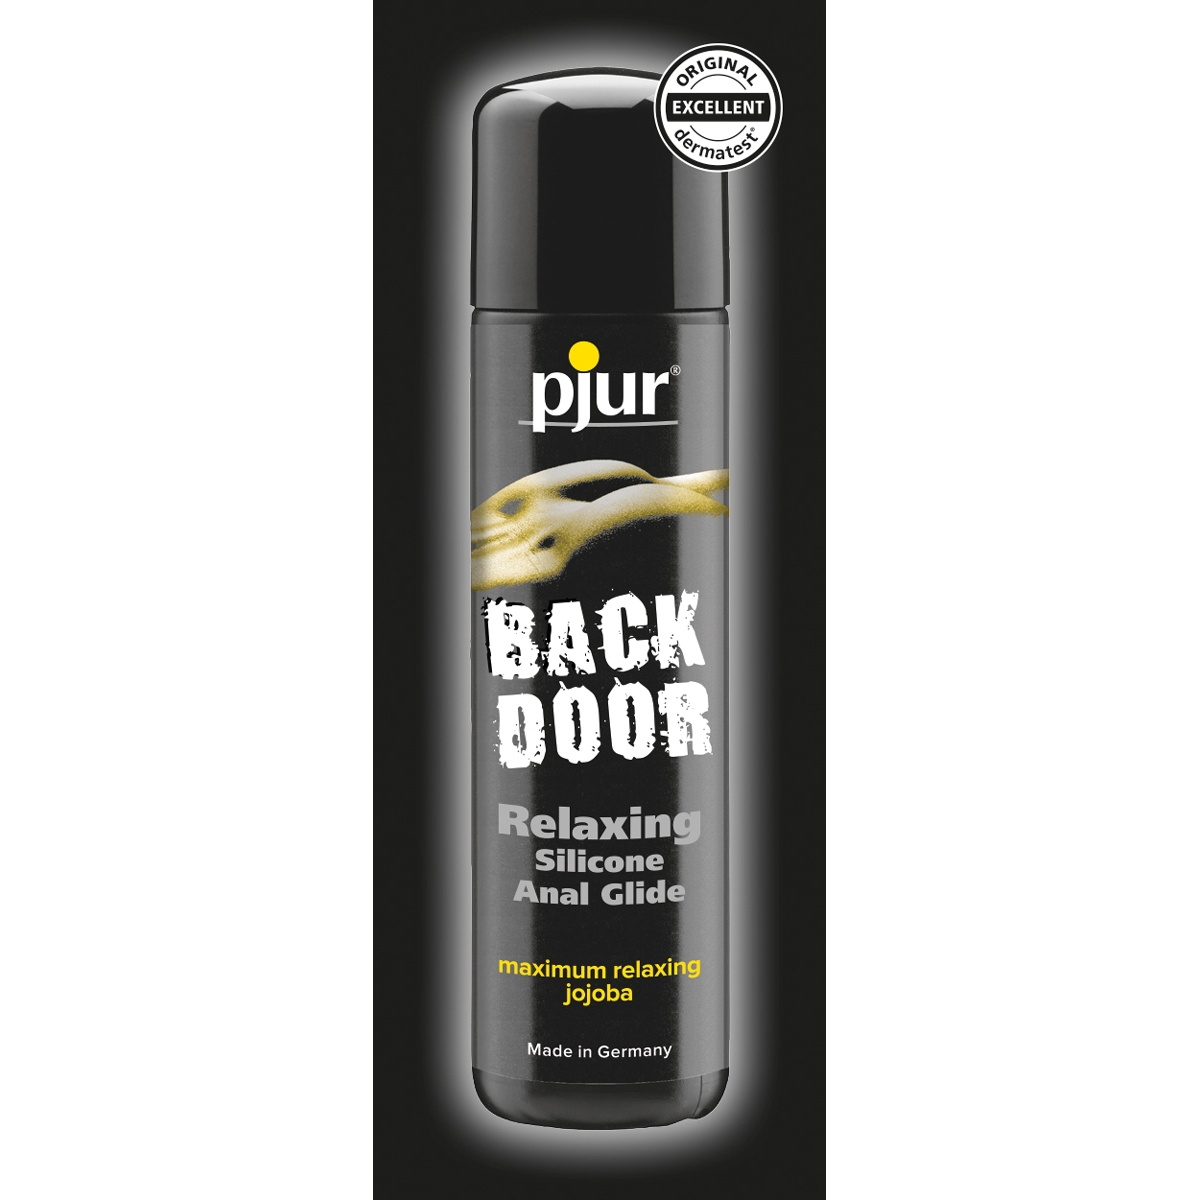 Pjur Back Door Anal Glide Silicone 1,5 ml